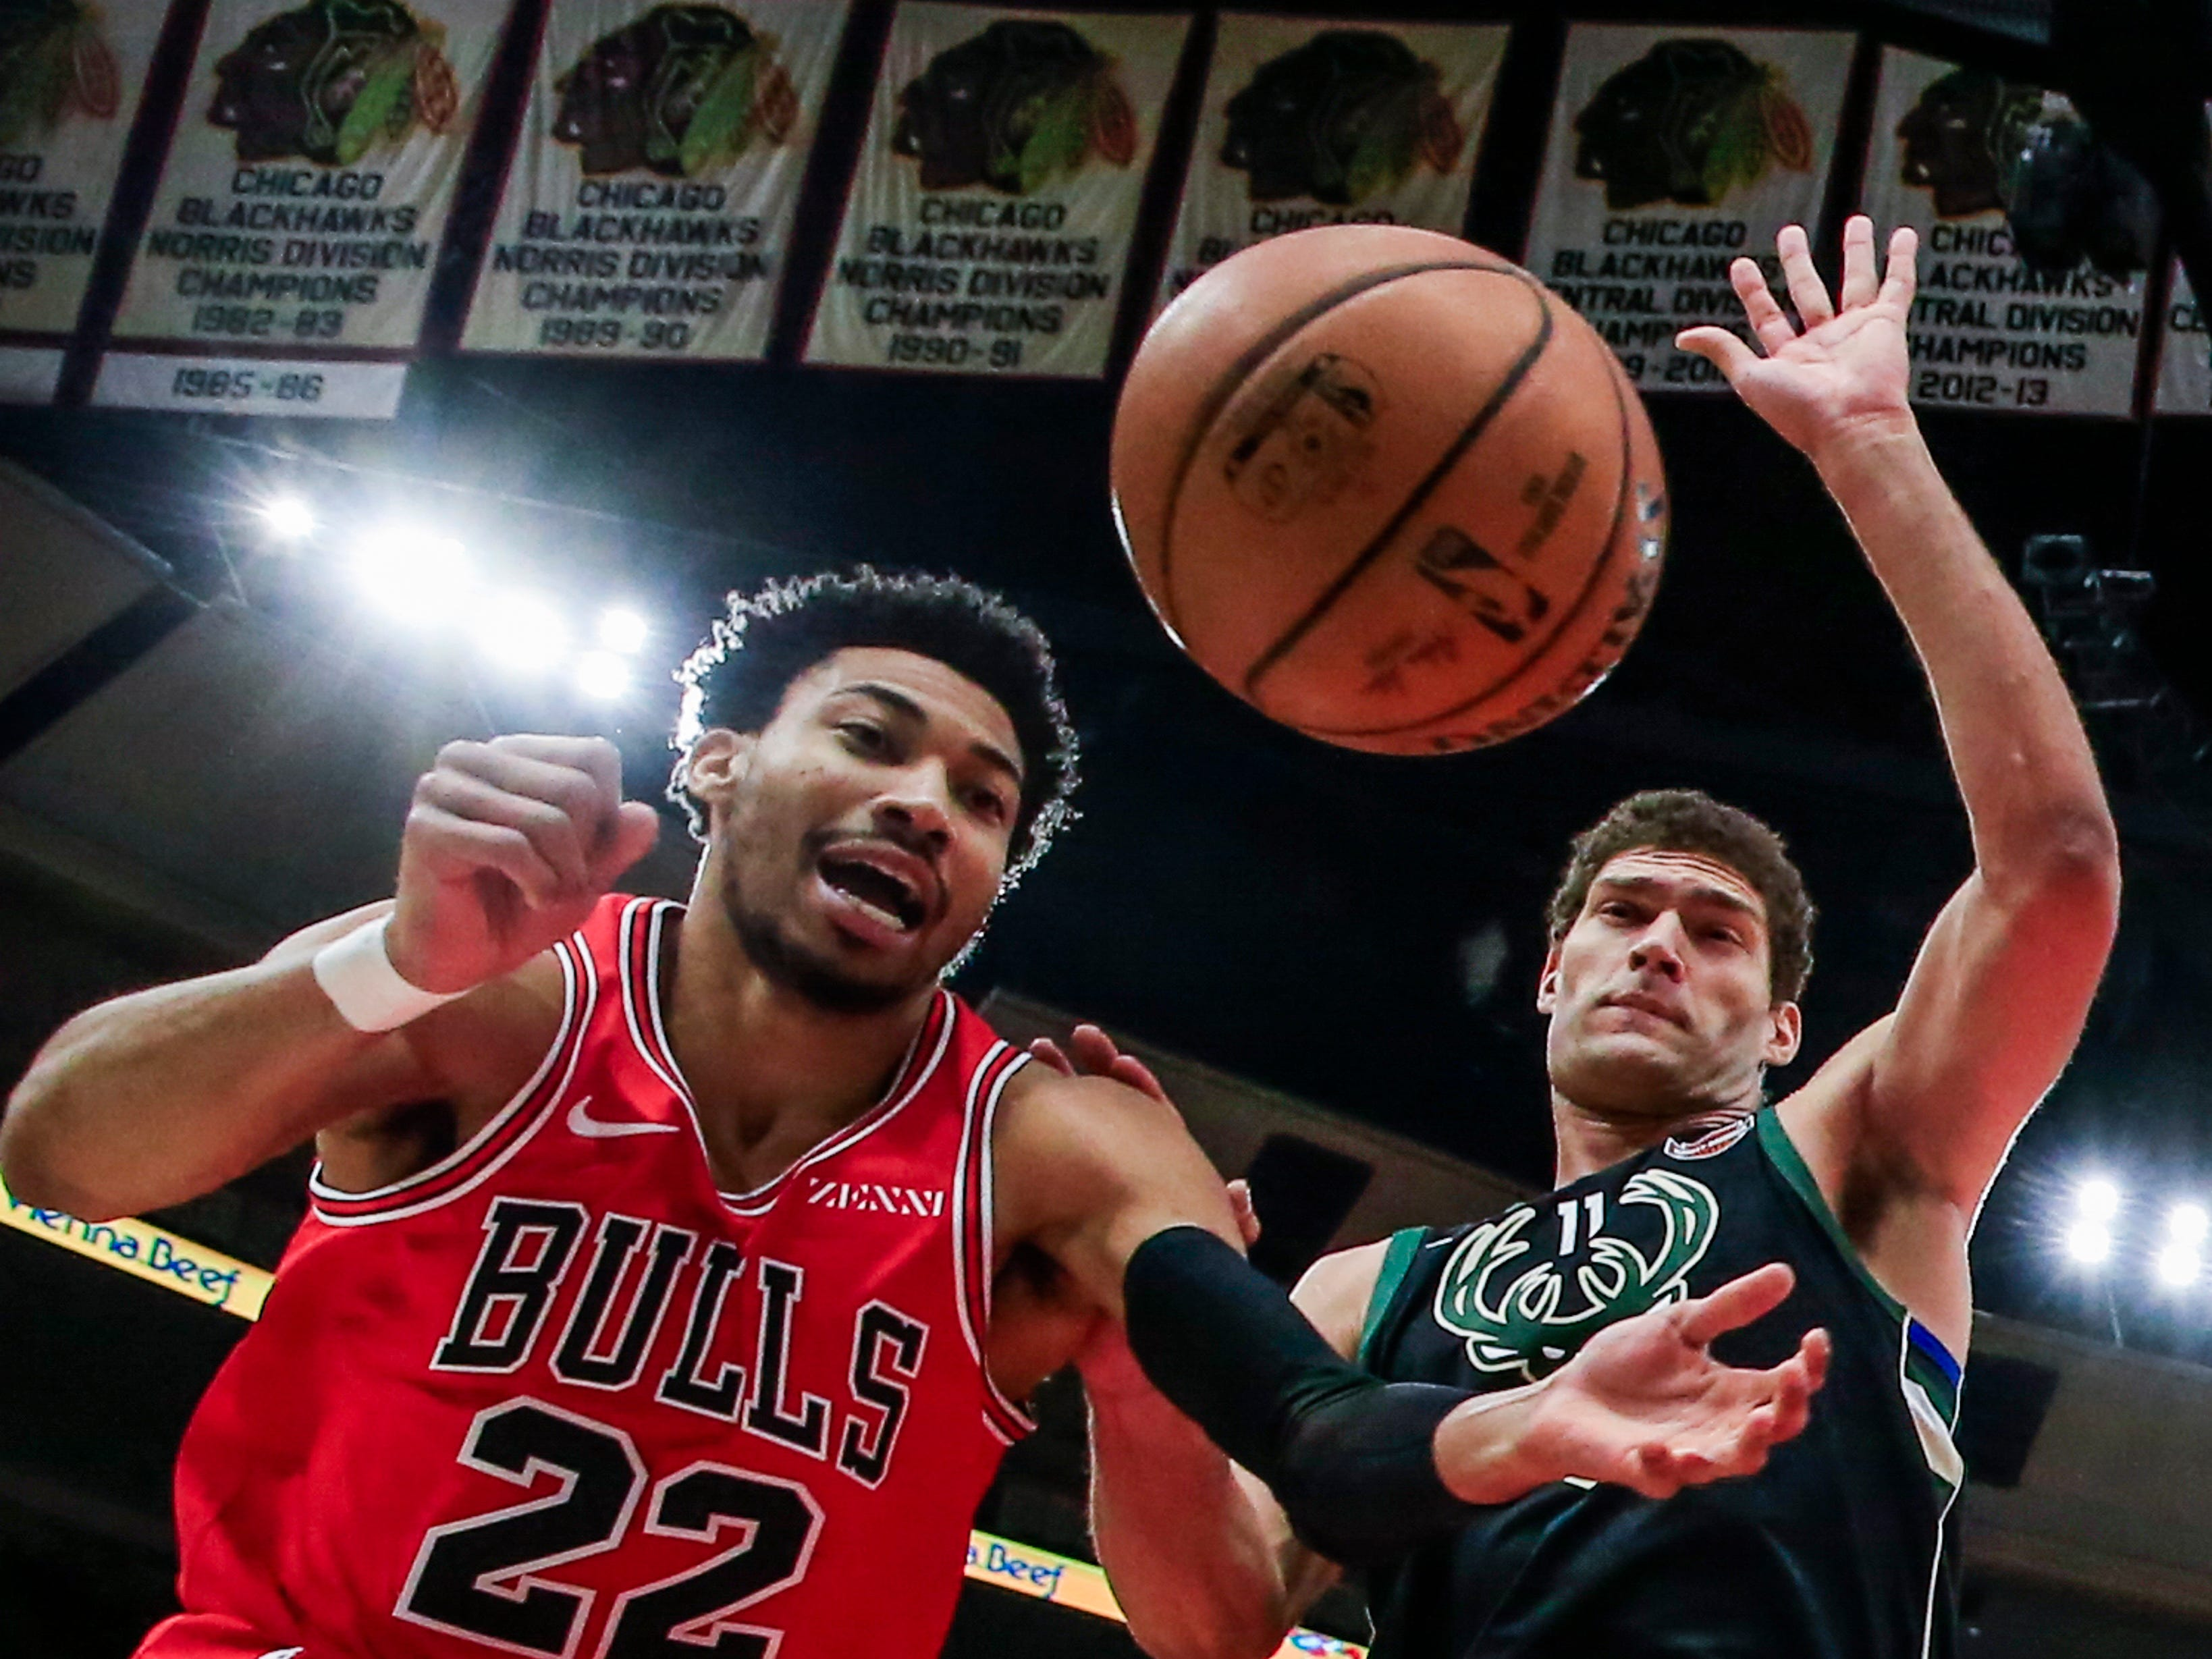 Otto Porter Jr. of the Bulls scrambles to get to the ball before it goes out of bounds as Bucks center Brook Lopez looks on Monday night.